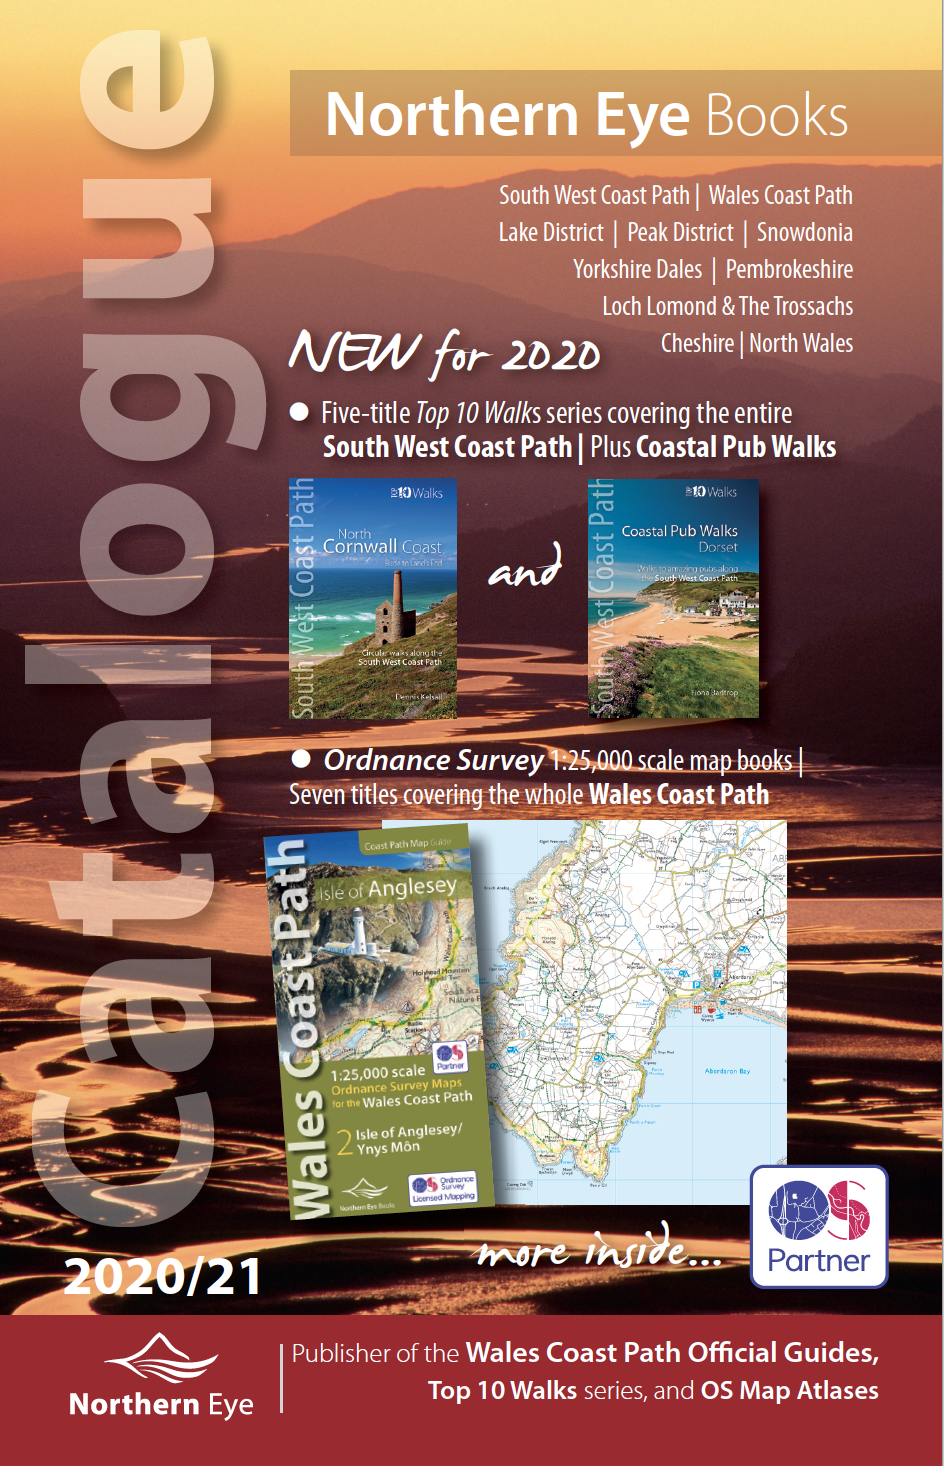 Northern Eye Books - NEW 2020/21 Catalogue